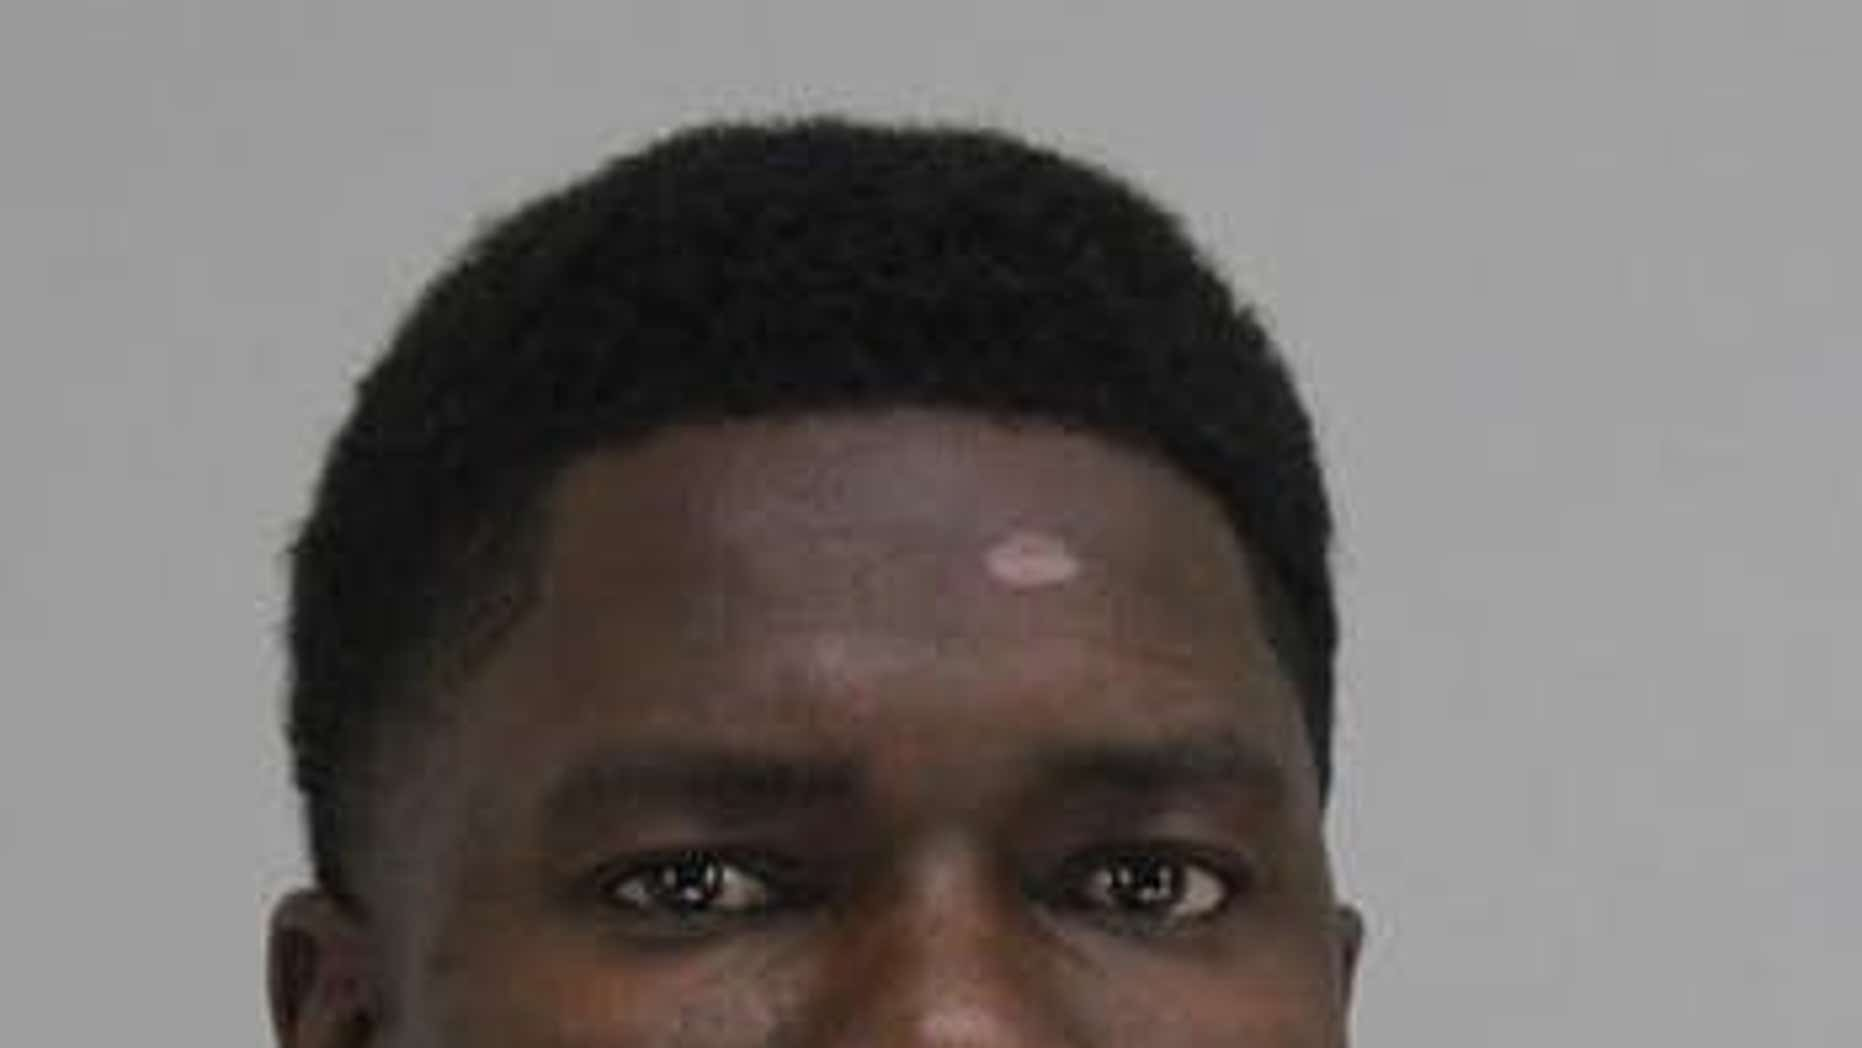 Edward Thomas, 29, was arrested late Sunday for his alleged role in an attack on a transgender woman.